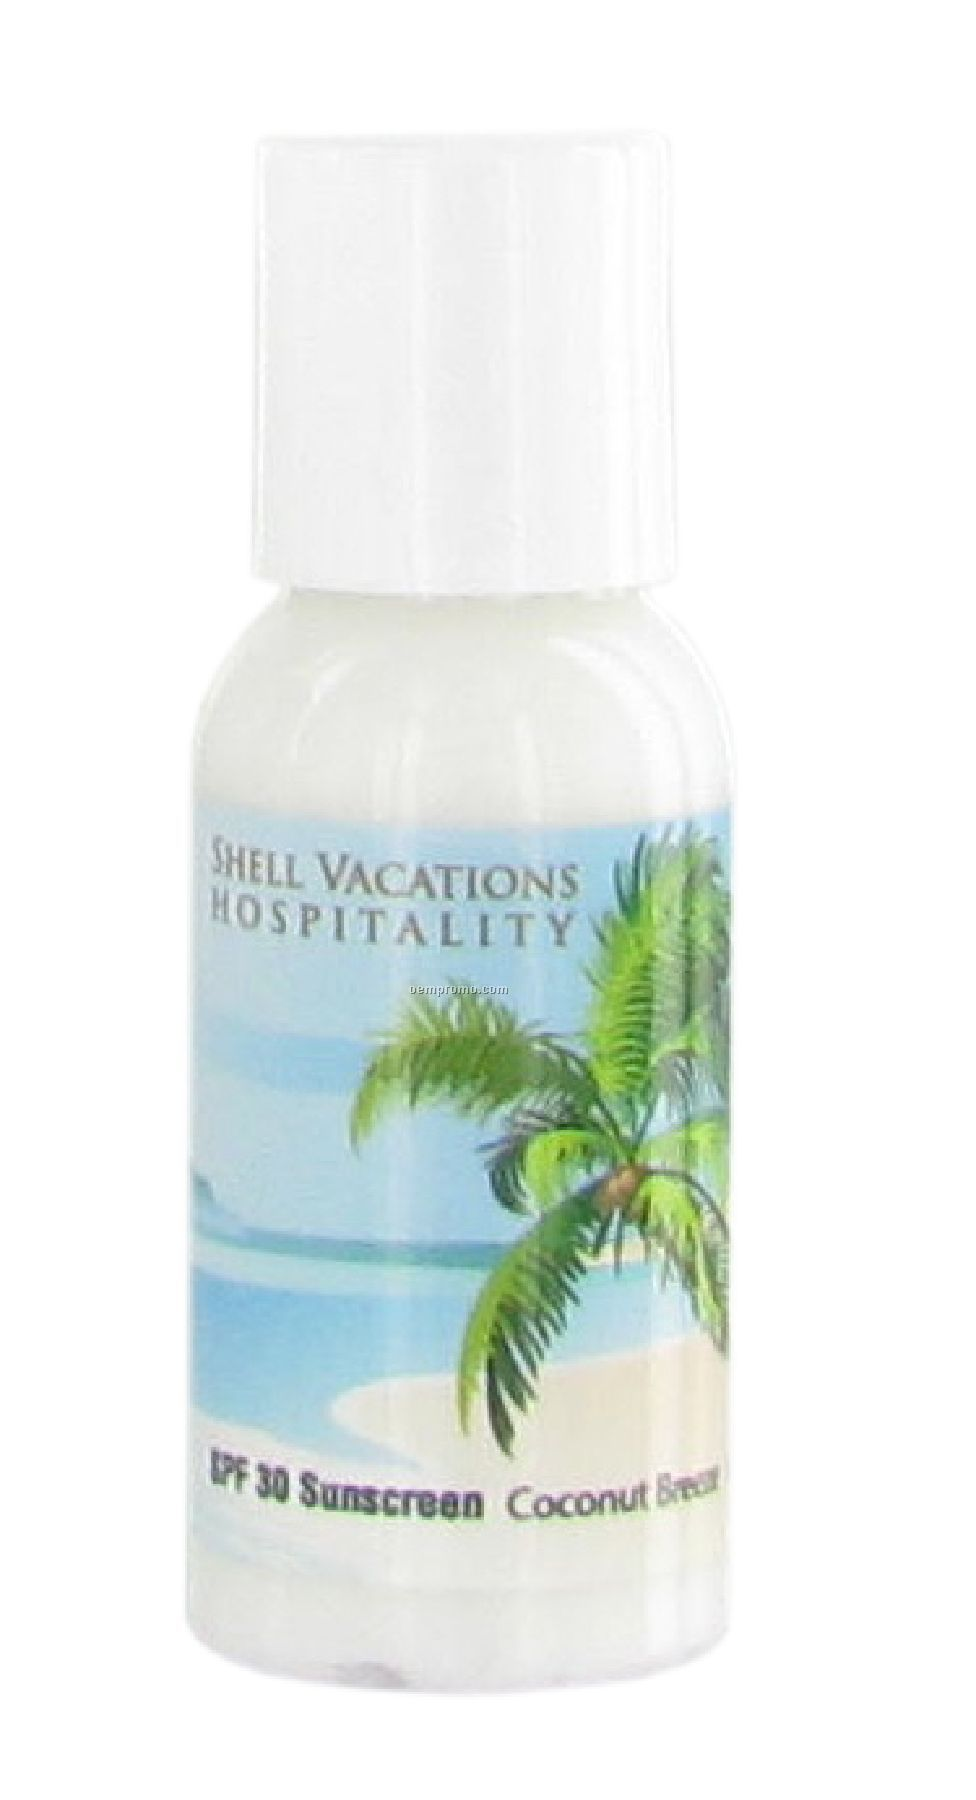 1 Oz. Spf 30 Sunscreen Lotion In Round Bottle